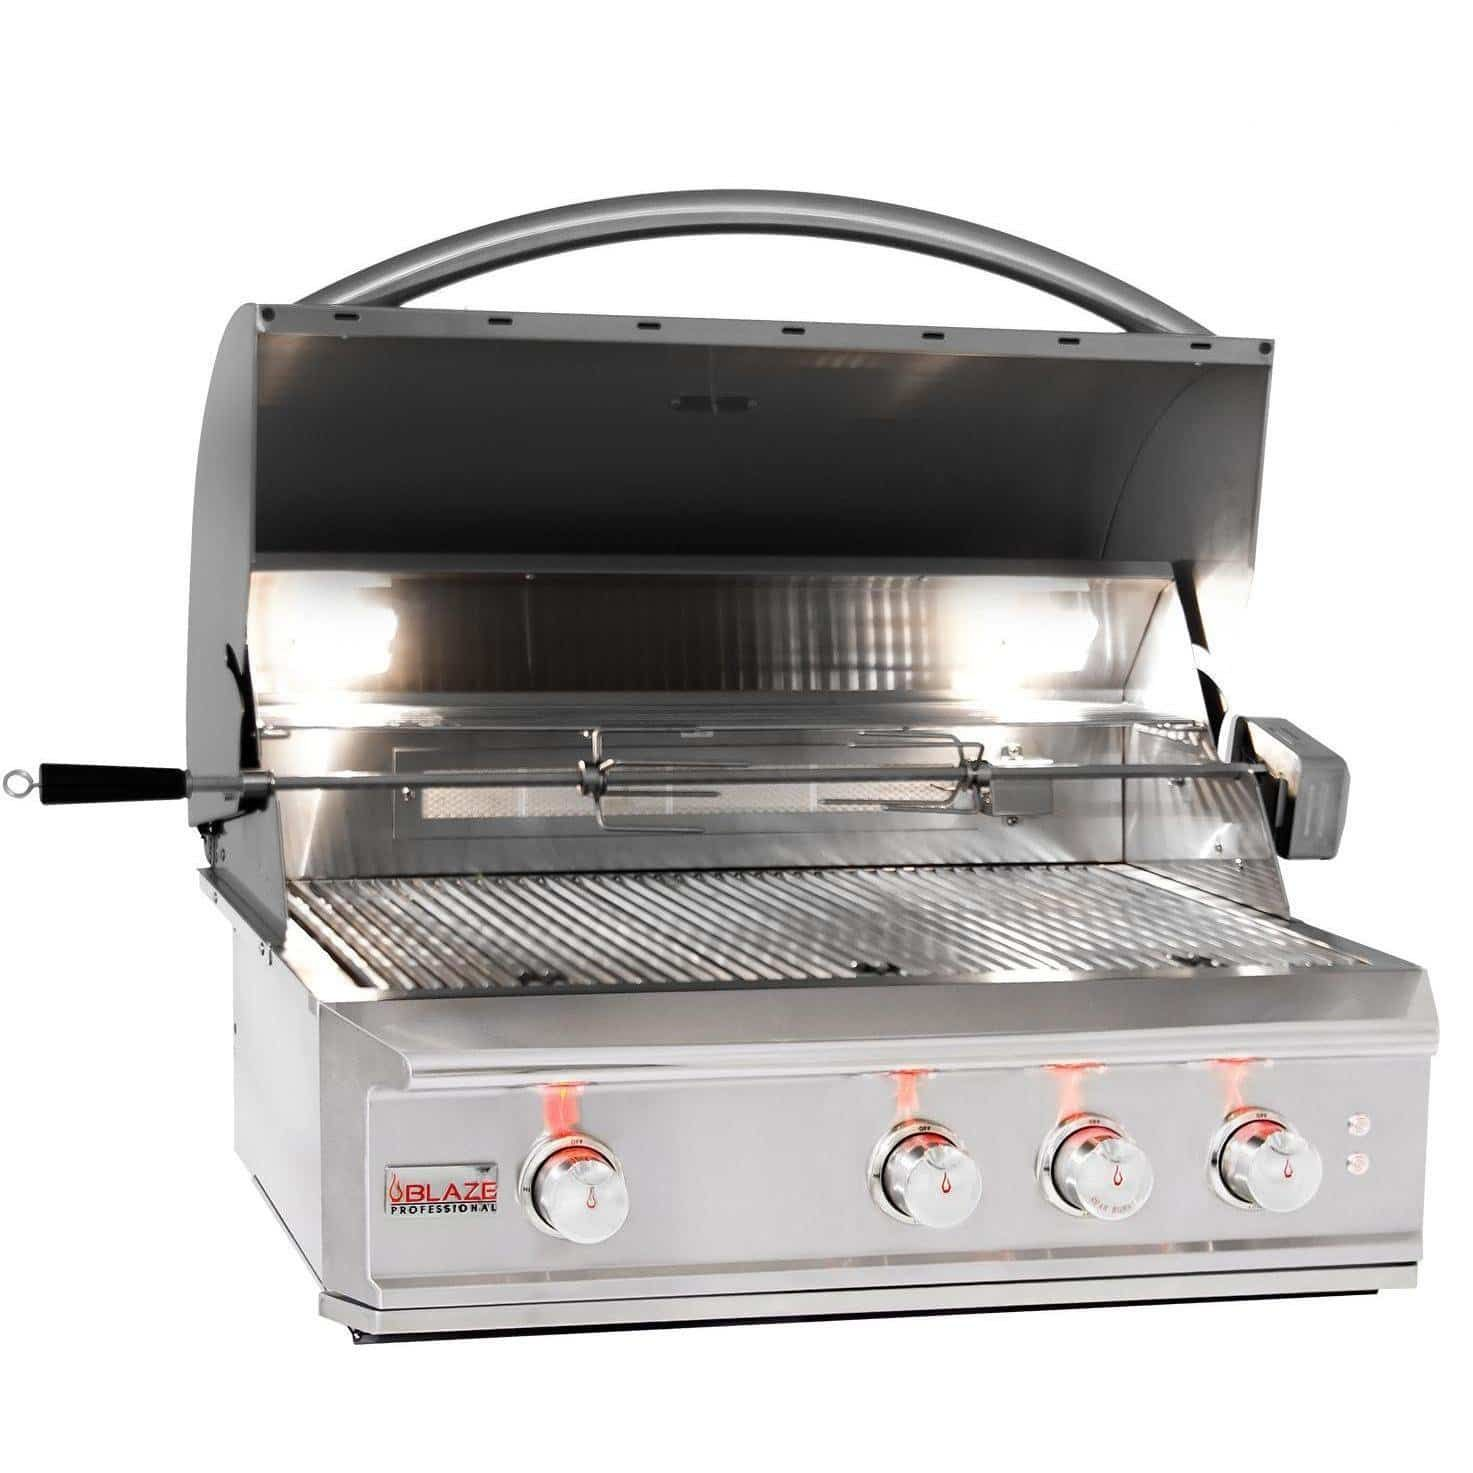 Pin By The Grilling Life On Grills And Outdoor Cooking Natural Gas Grill Outdoor Kitchen Gas Grill